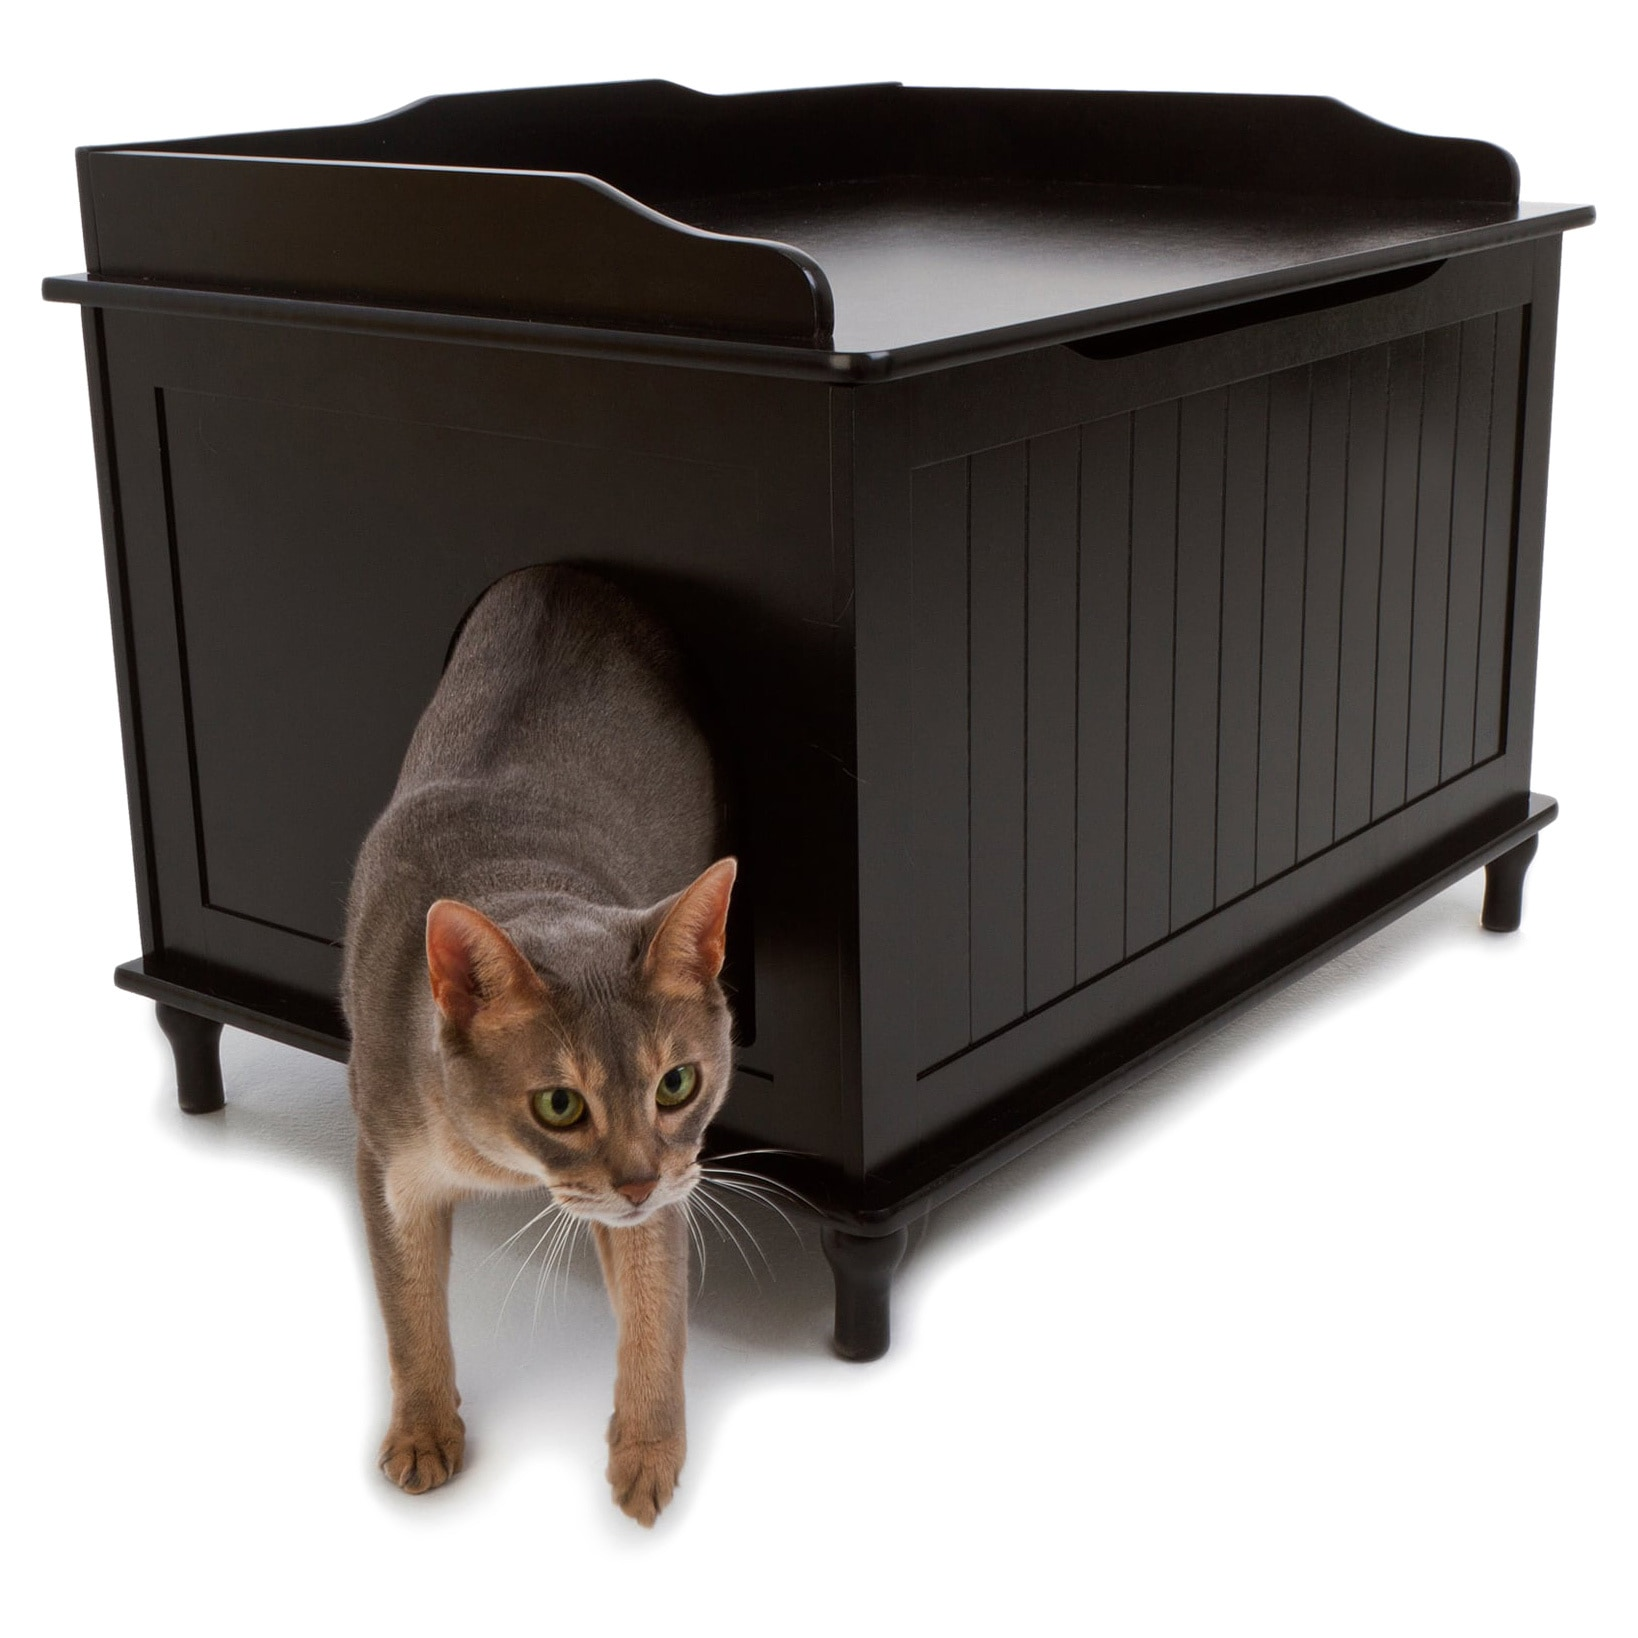 Designer Catbox Hidden Litter Box Enclosure Furniture - Free Shipping Today - Overstock.com - 15055558  sc 1 st  Overstock.com & Designer Catbox Hidden Litter Box Enclosure Furniture - Free ...